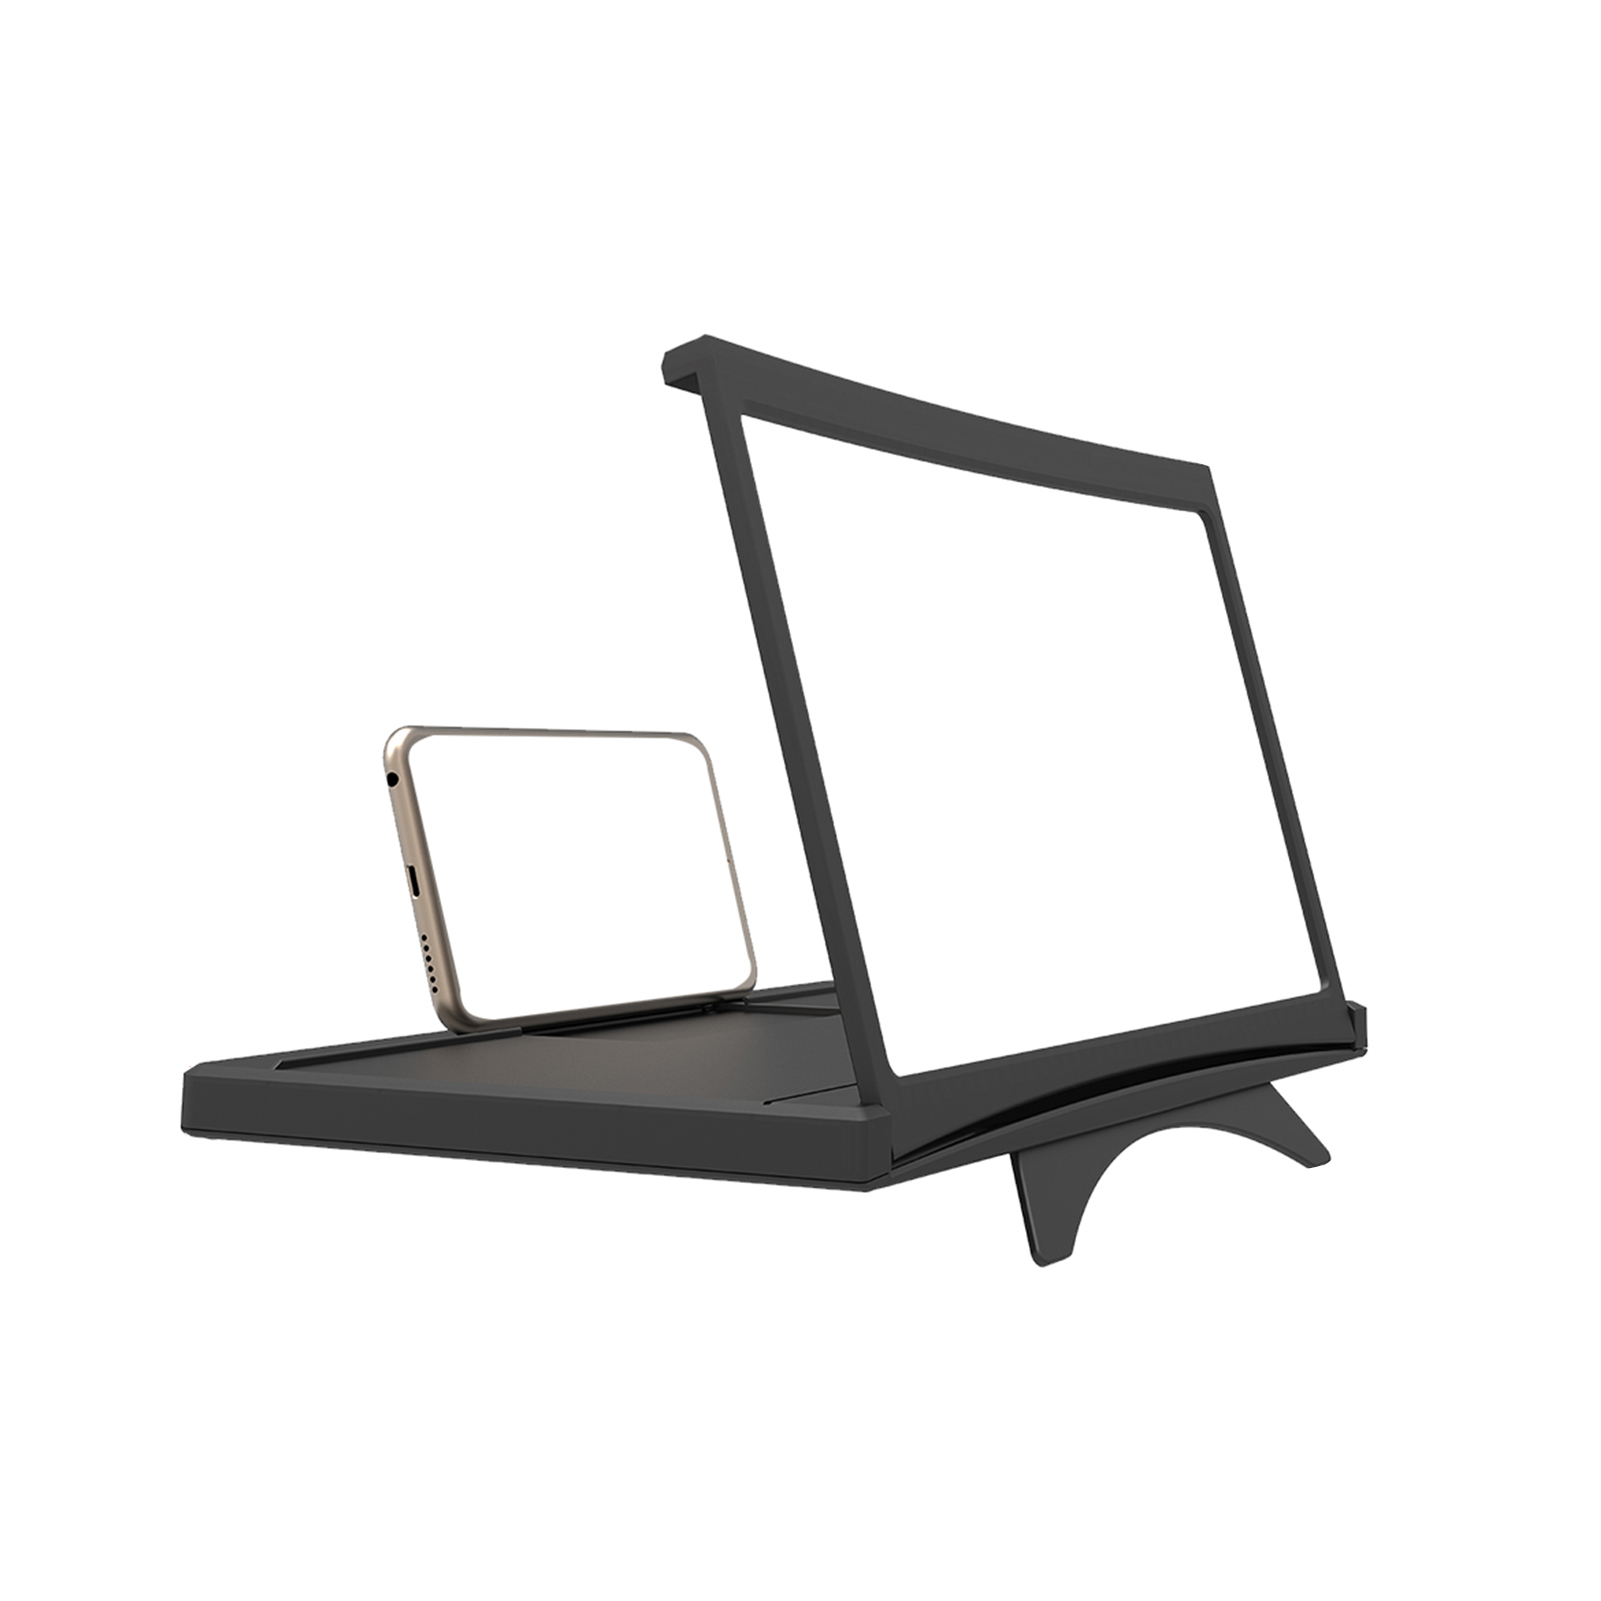 3D Screen Amplifier Mobile Phone Screen Video Magnifier For Cell Phone Smartphone Enlarged Screen Phone Stand Bracket